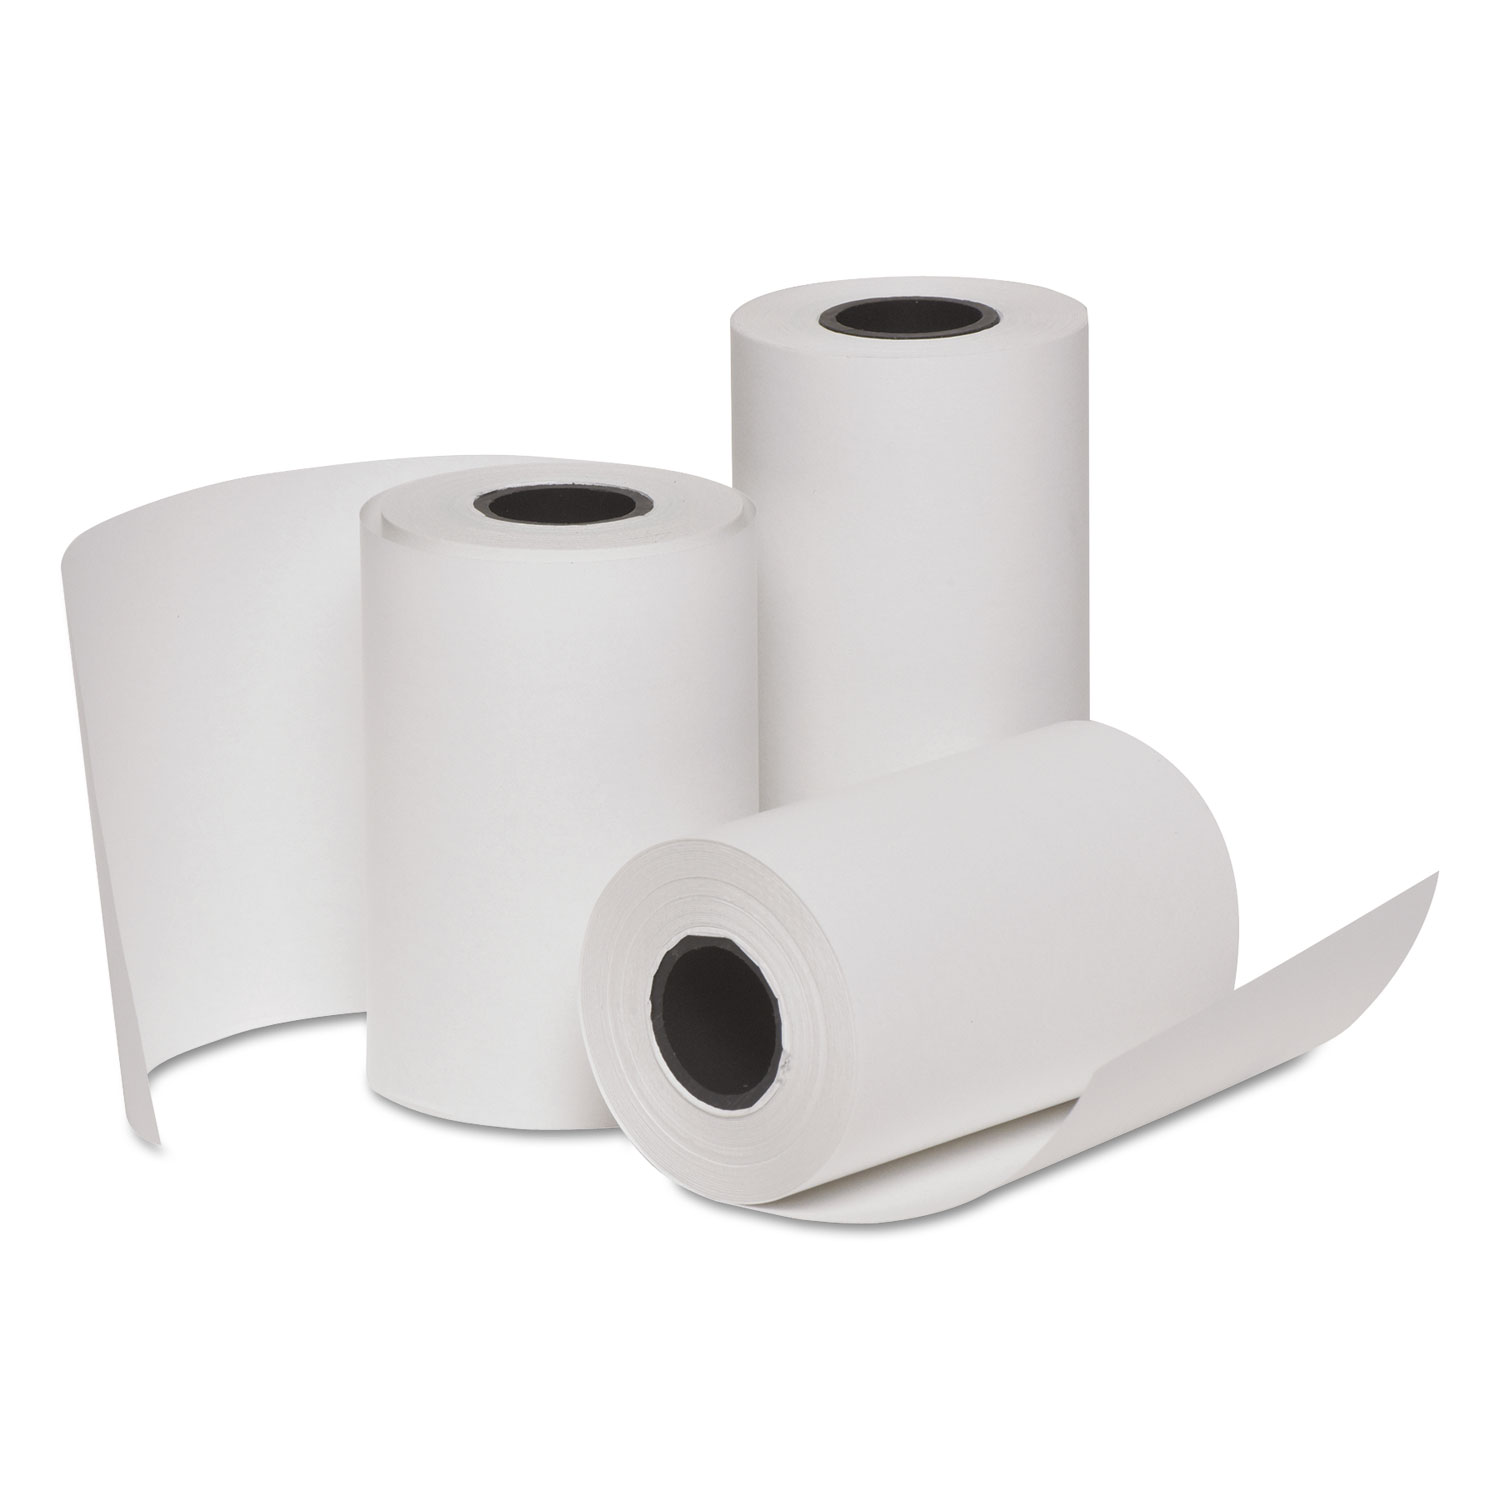 Deluxe Direct Thermal Printing Paper Rolls, 3 x 85 ft, 10 Rolls/PK